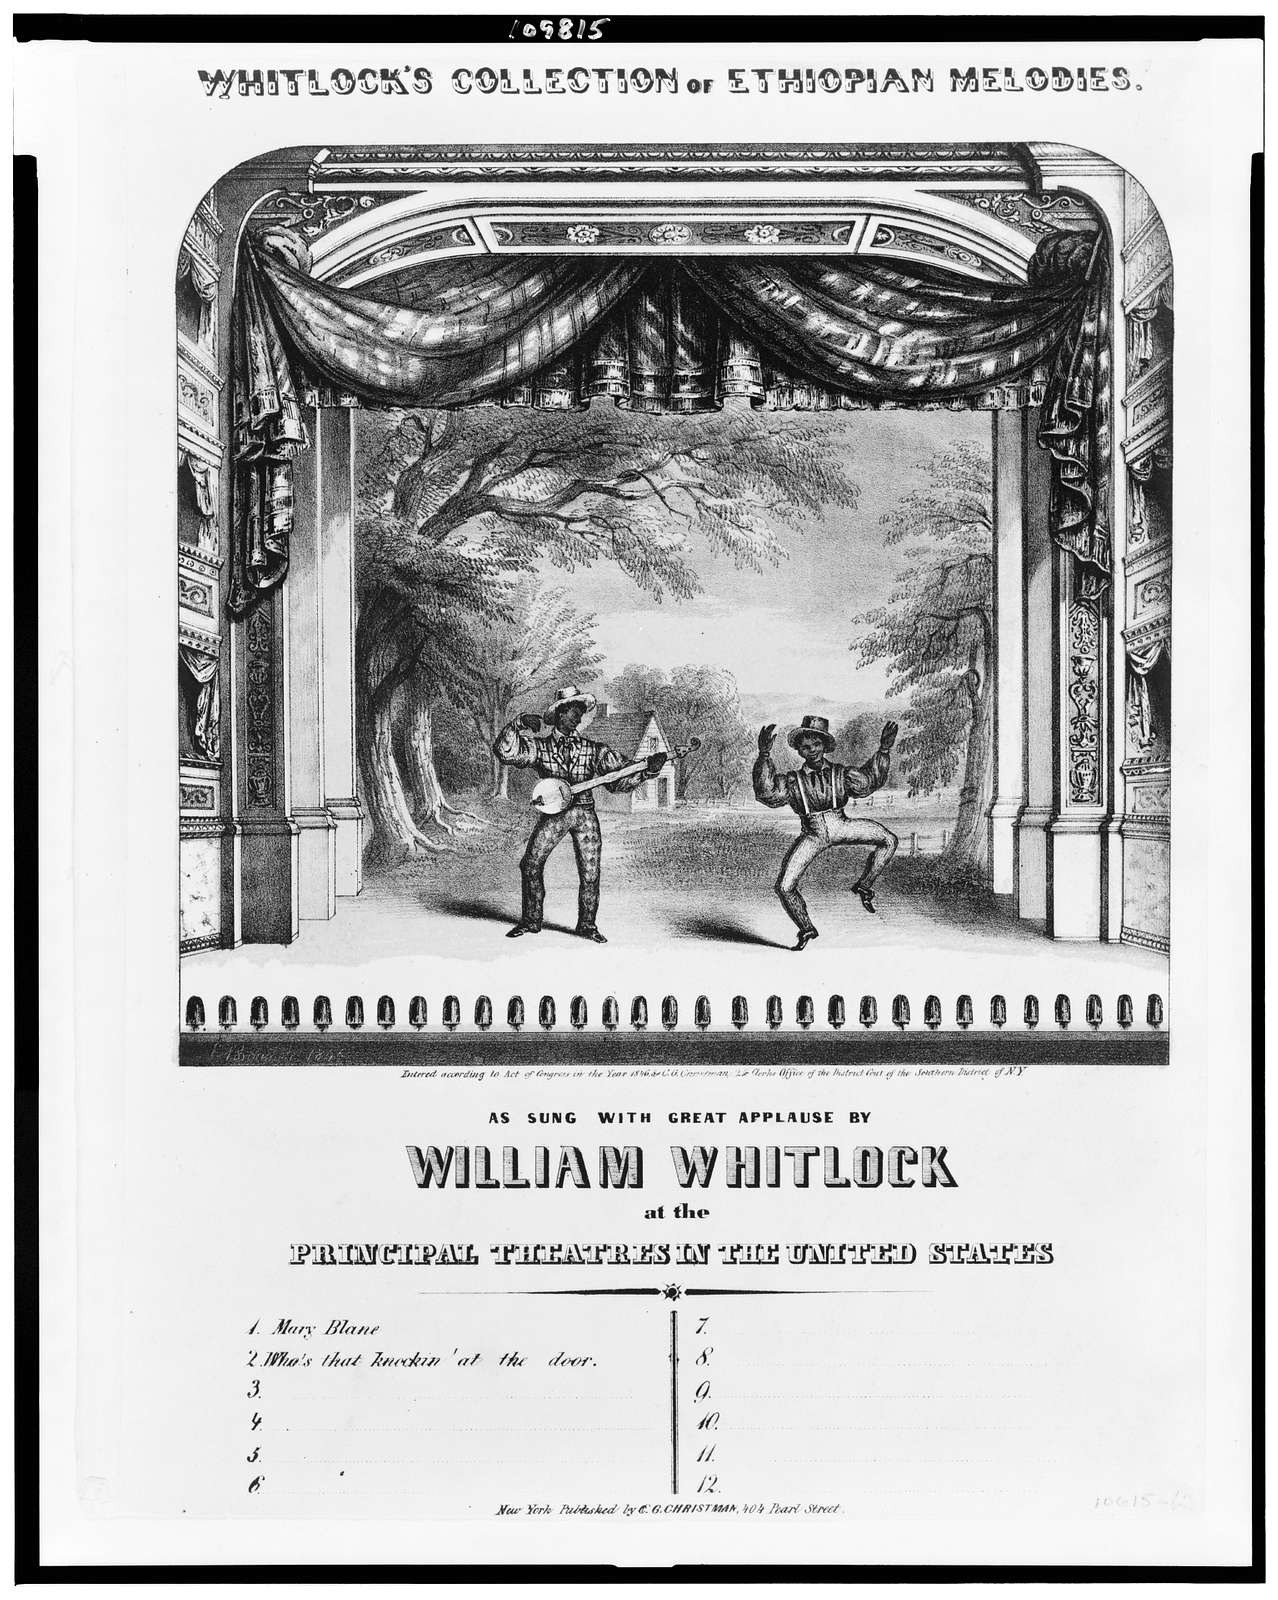 Whitlock's collection of Ethiopian melodies. As sung with great applause by William Whitlock at the principal theatres in the United States